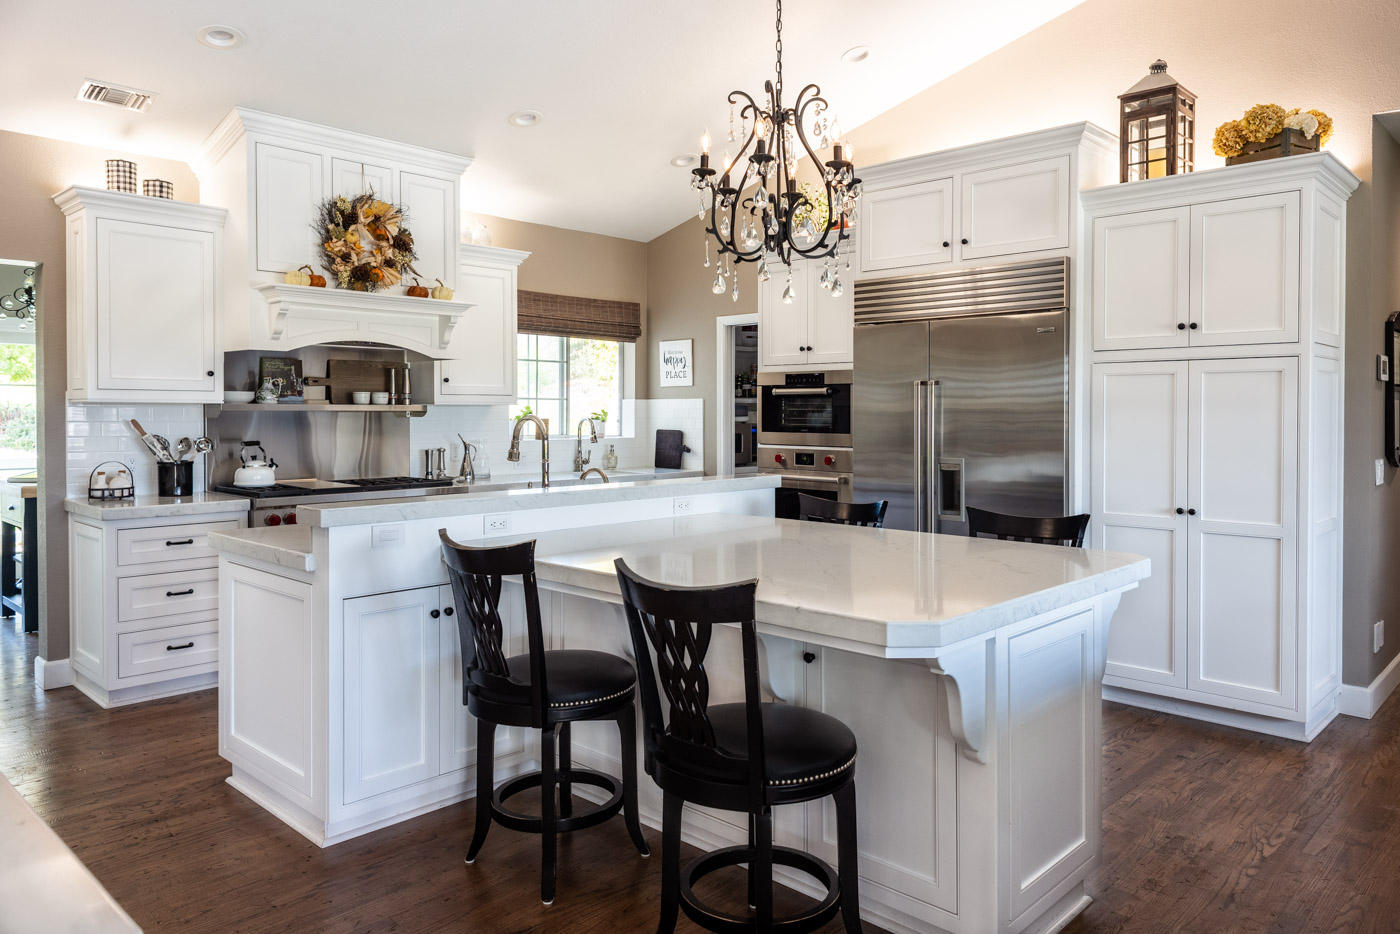 A Transitional white kitchen with custom painted small bone flush inset cabinets and stainless steel appliances